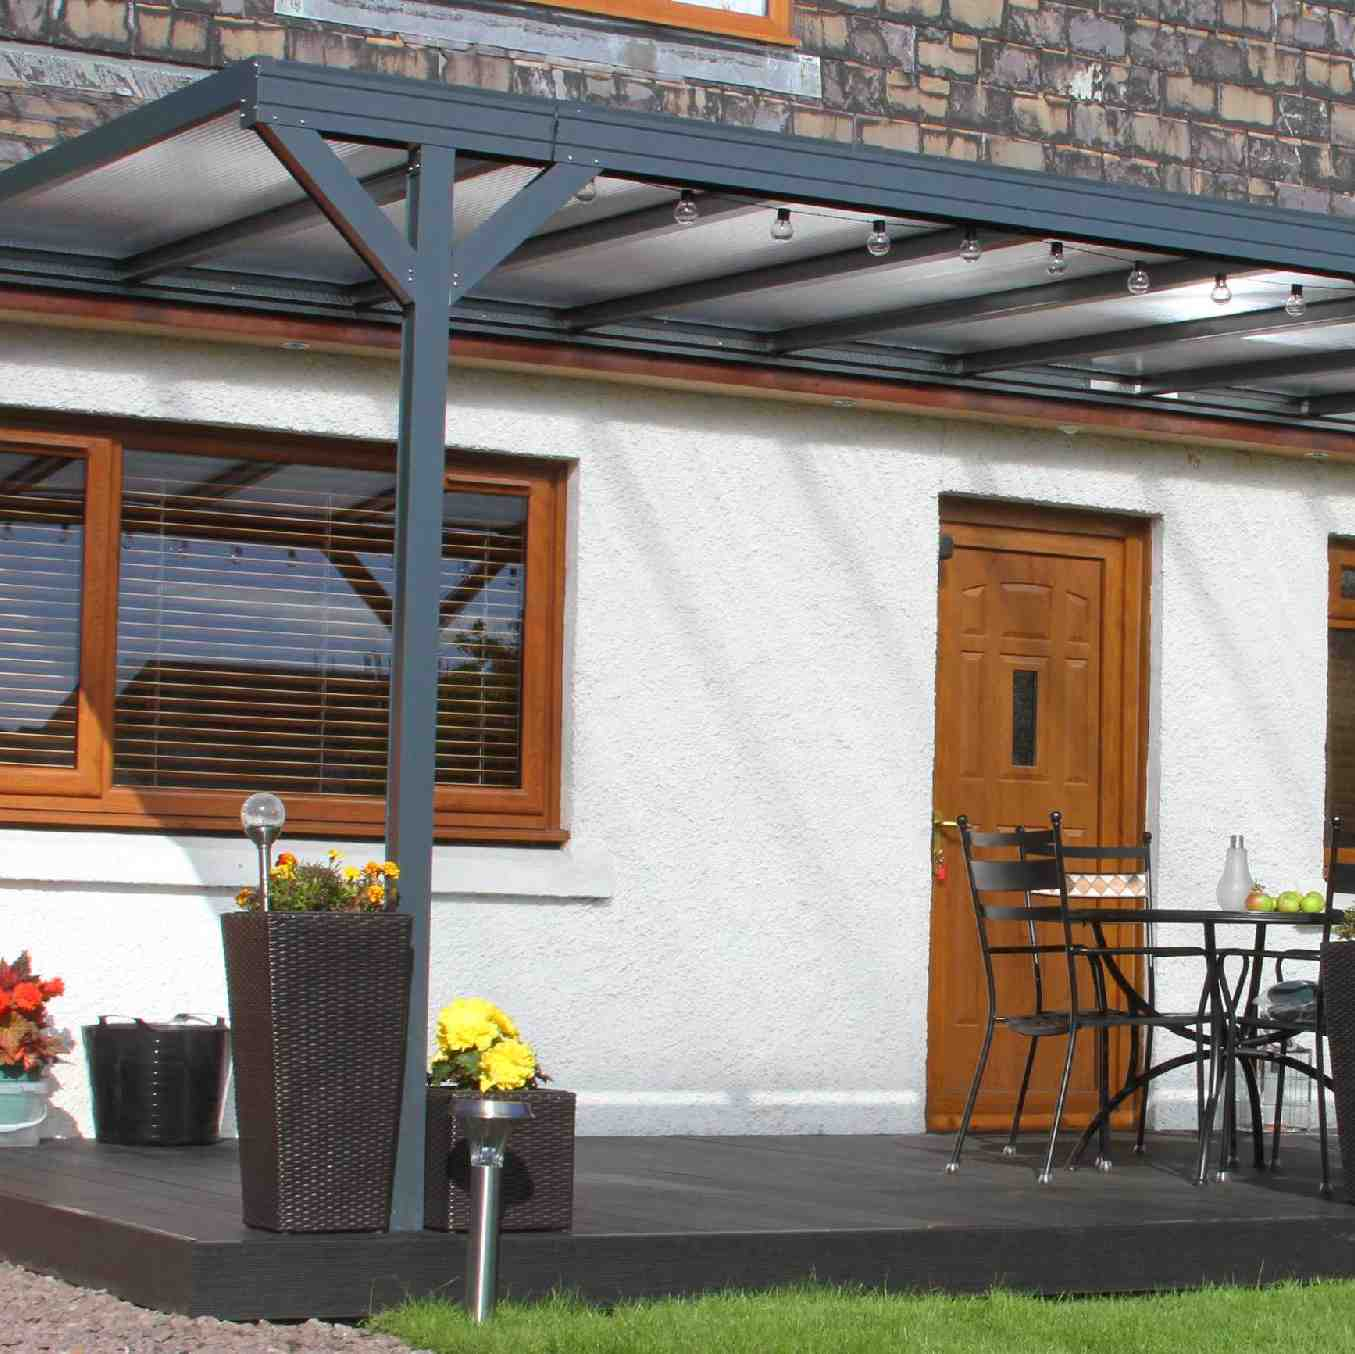 Omega Verandah, Anthracite Grey, 16mm Polycarbonate Glazing - 8.4m (W) x 2.0m (P), (4) Supporting Posts